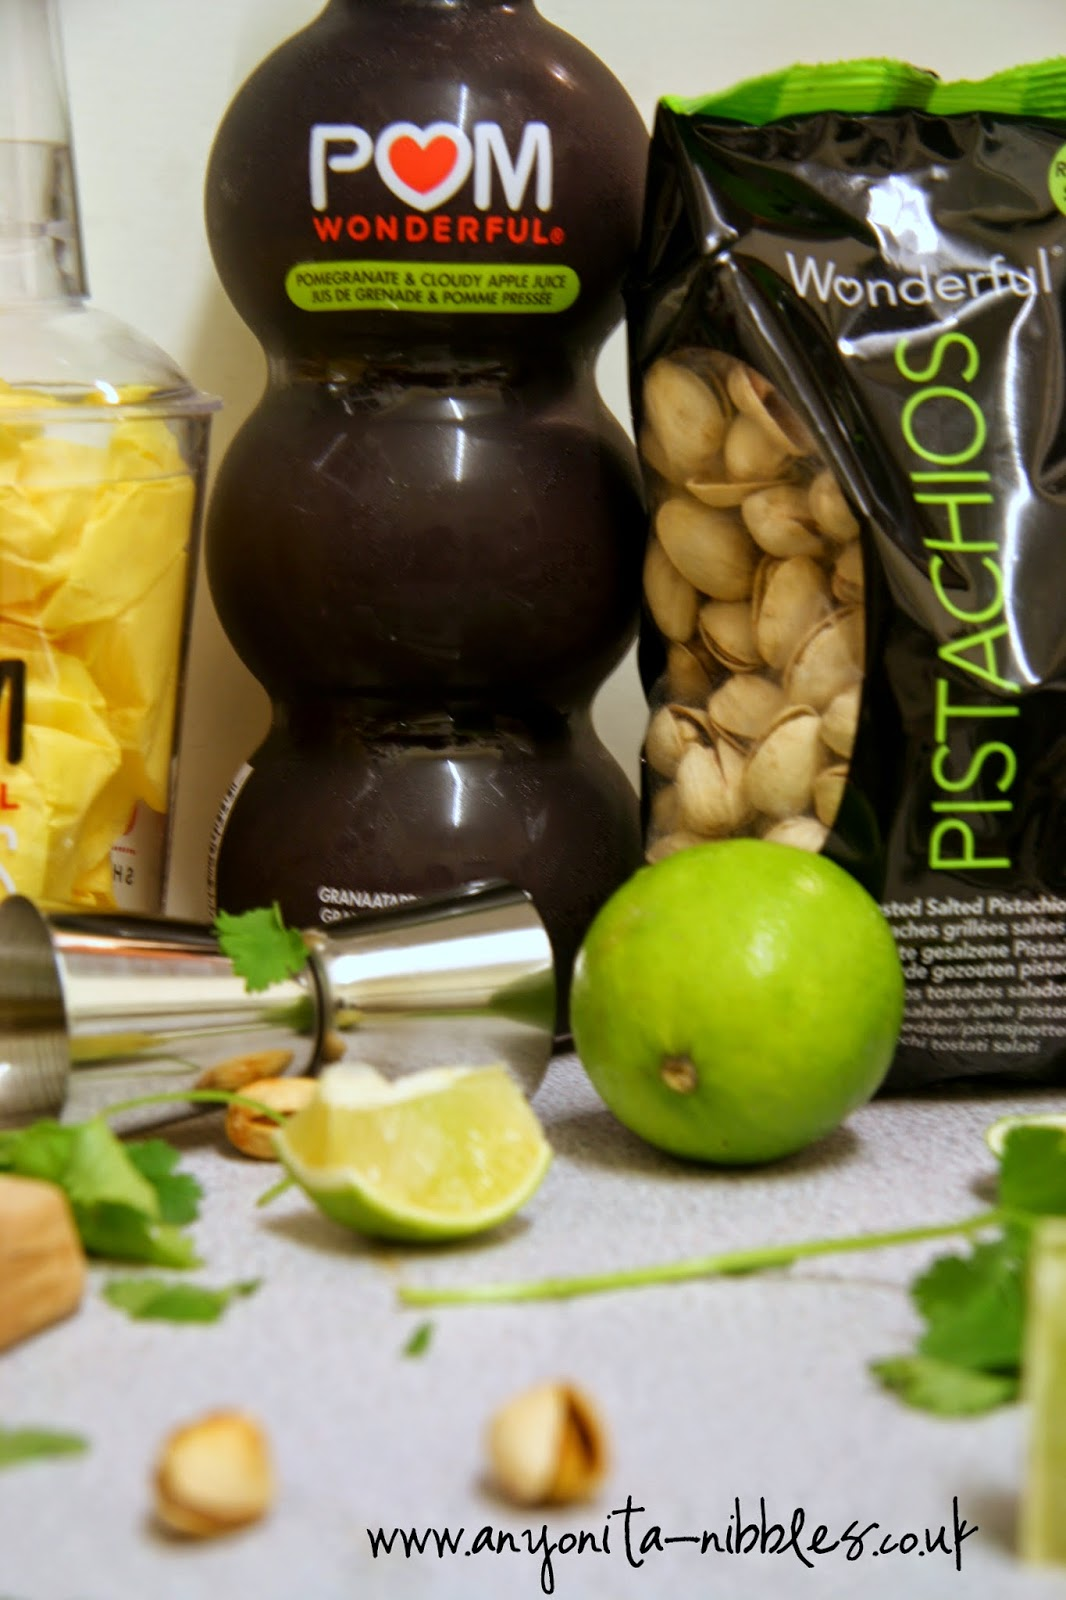 Pomengranates & Pistachios--a match made in heaven! From Anyonita Nibbles